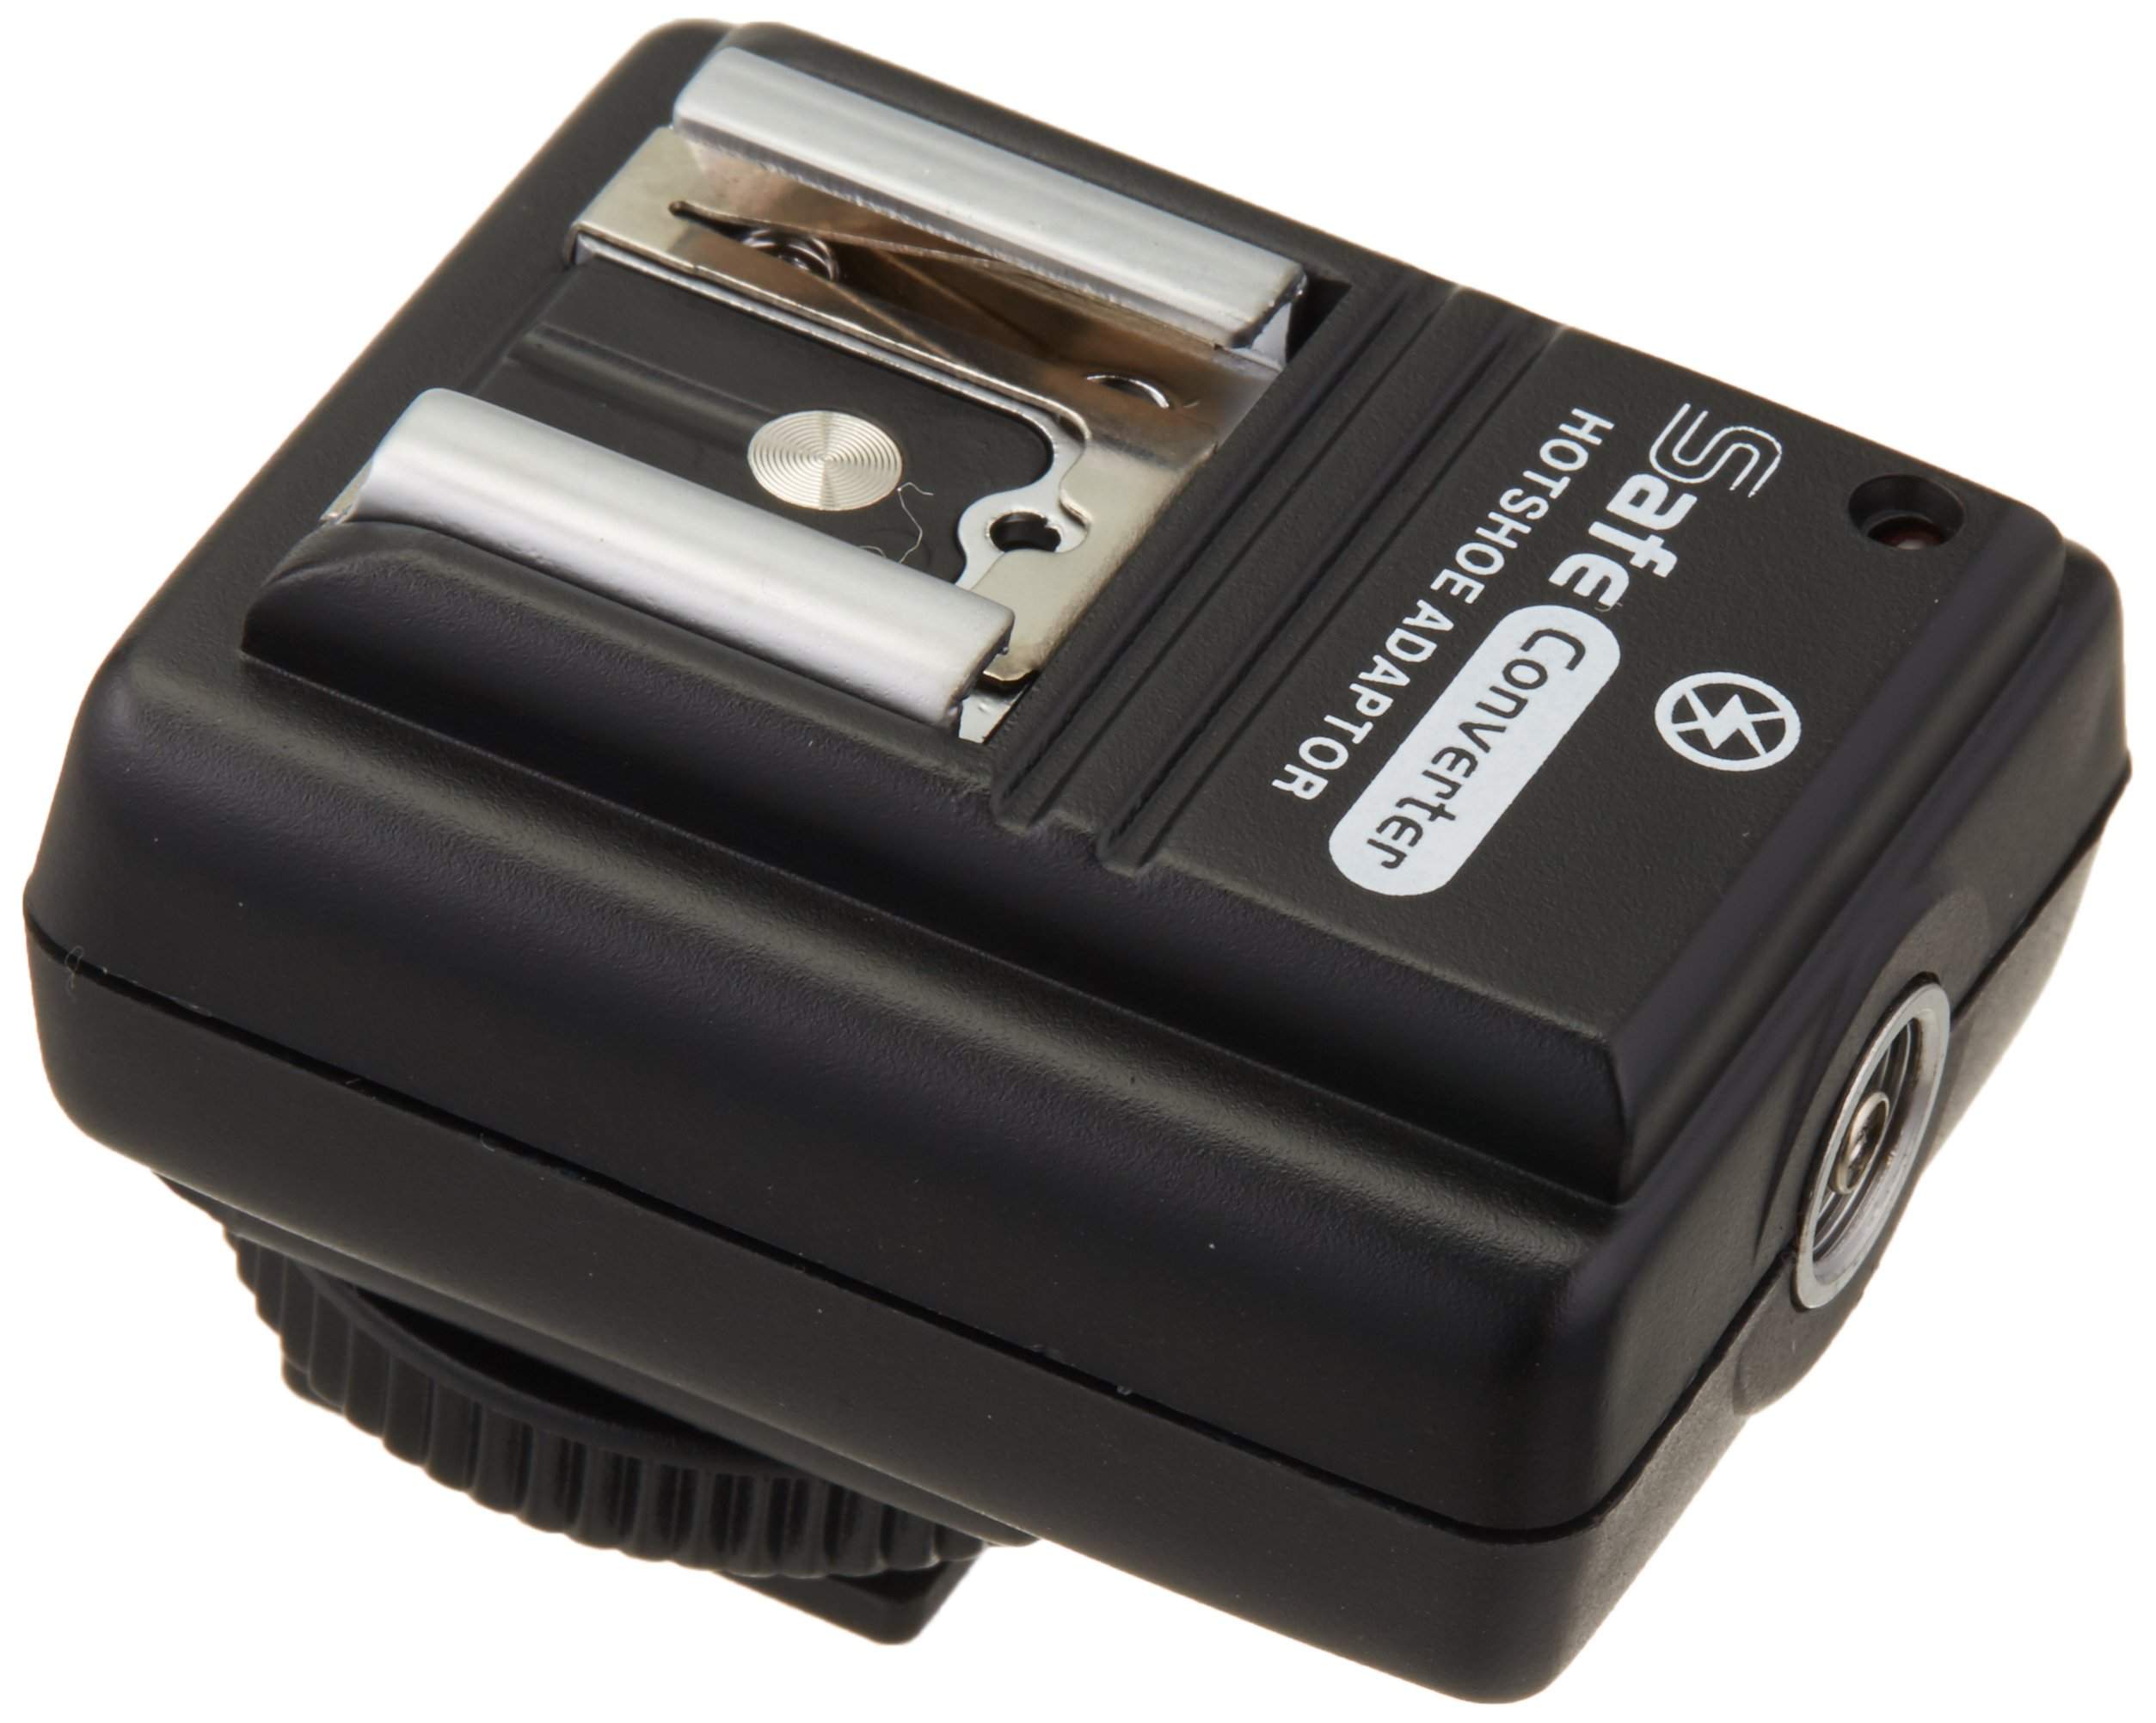 a97c3b049e Get Quotations · SMDV Hot Shoe Safe Sync Adapter SM-512 for Canon EOS  Digital Rebel T3i